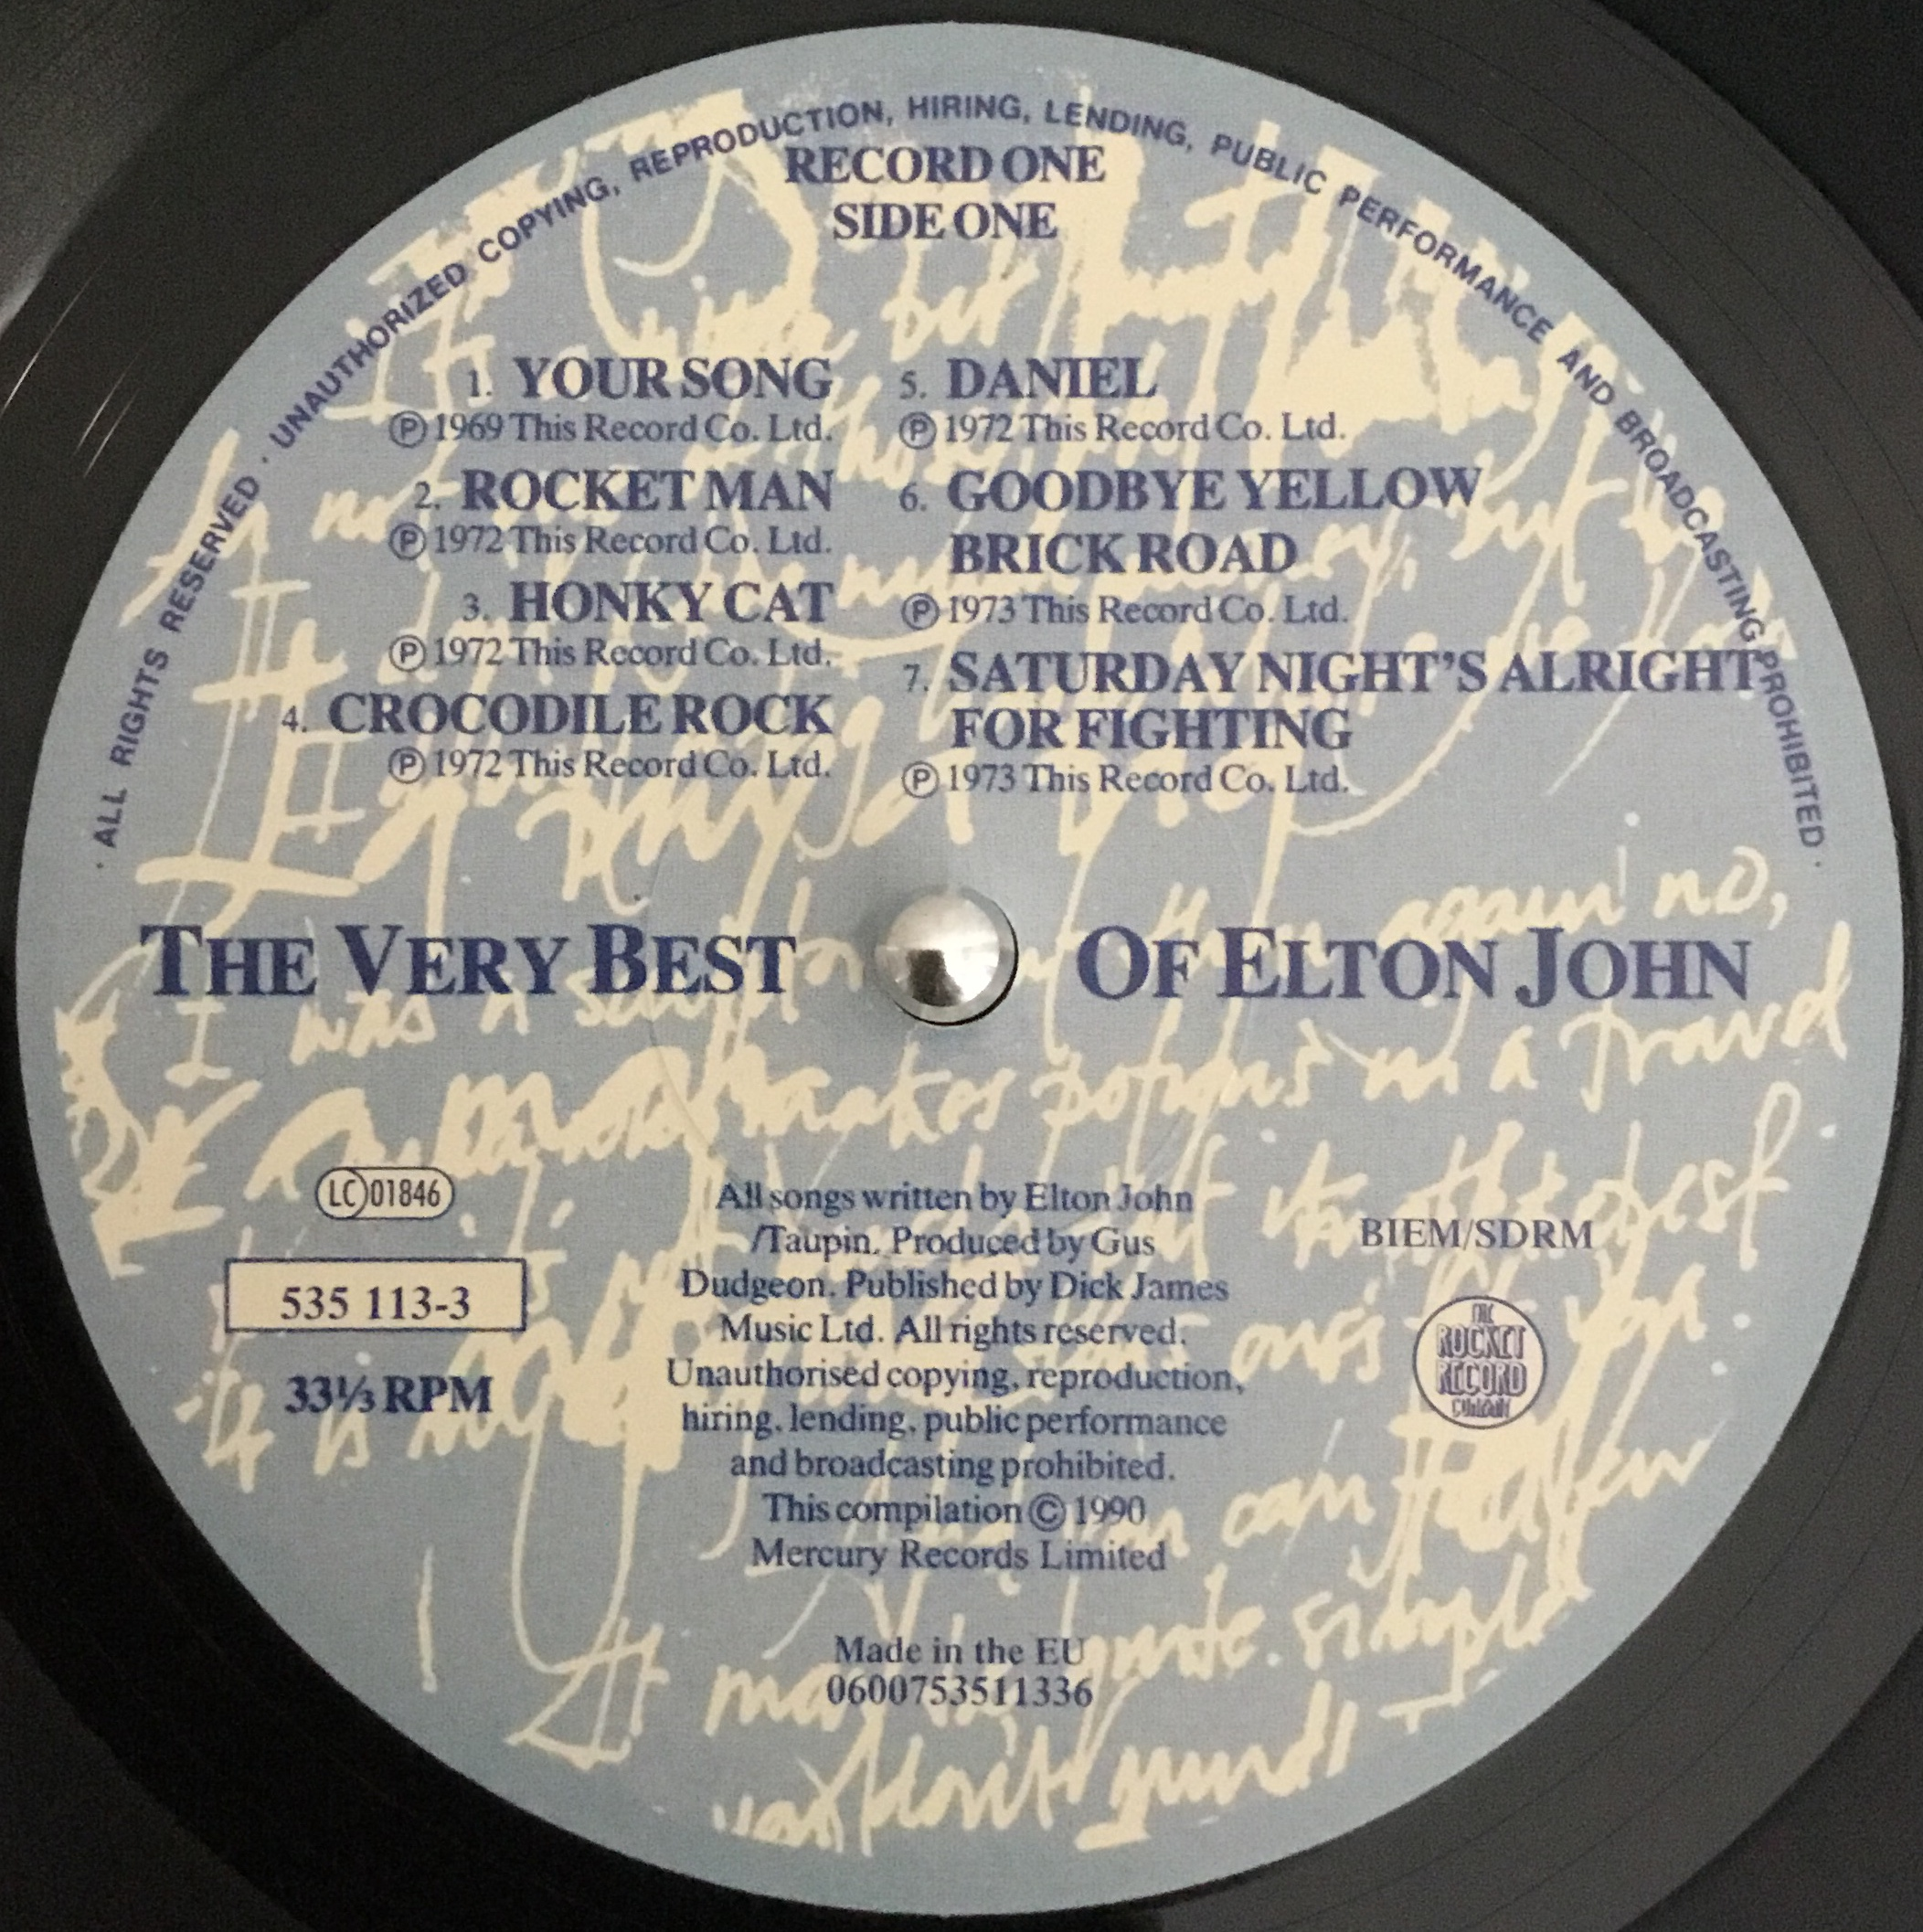 Elton John - The Very Best Of Elton John (Compilation Review